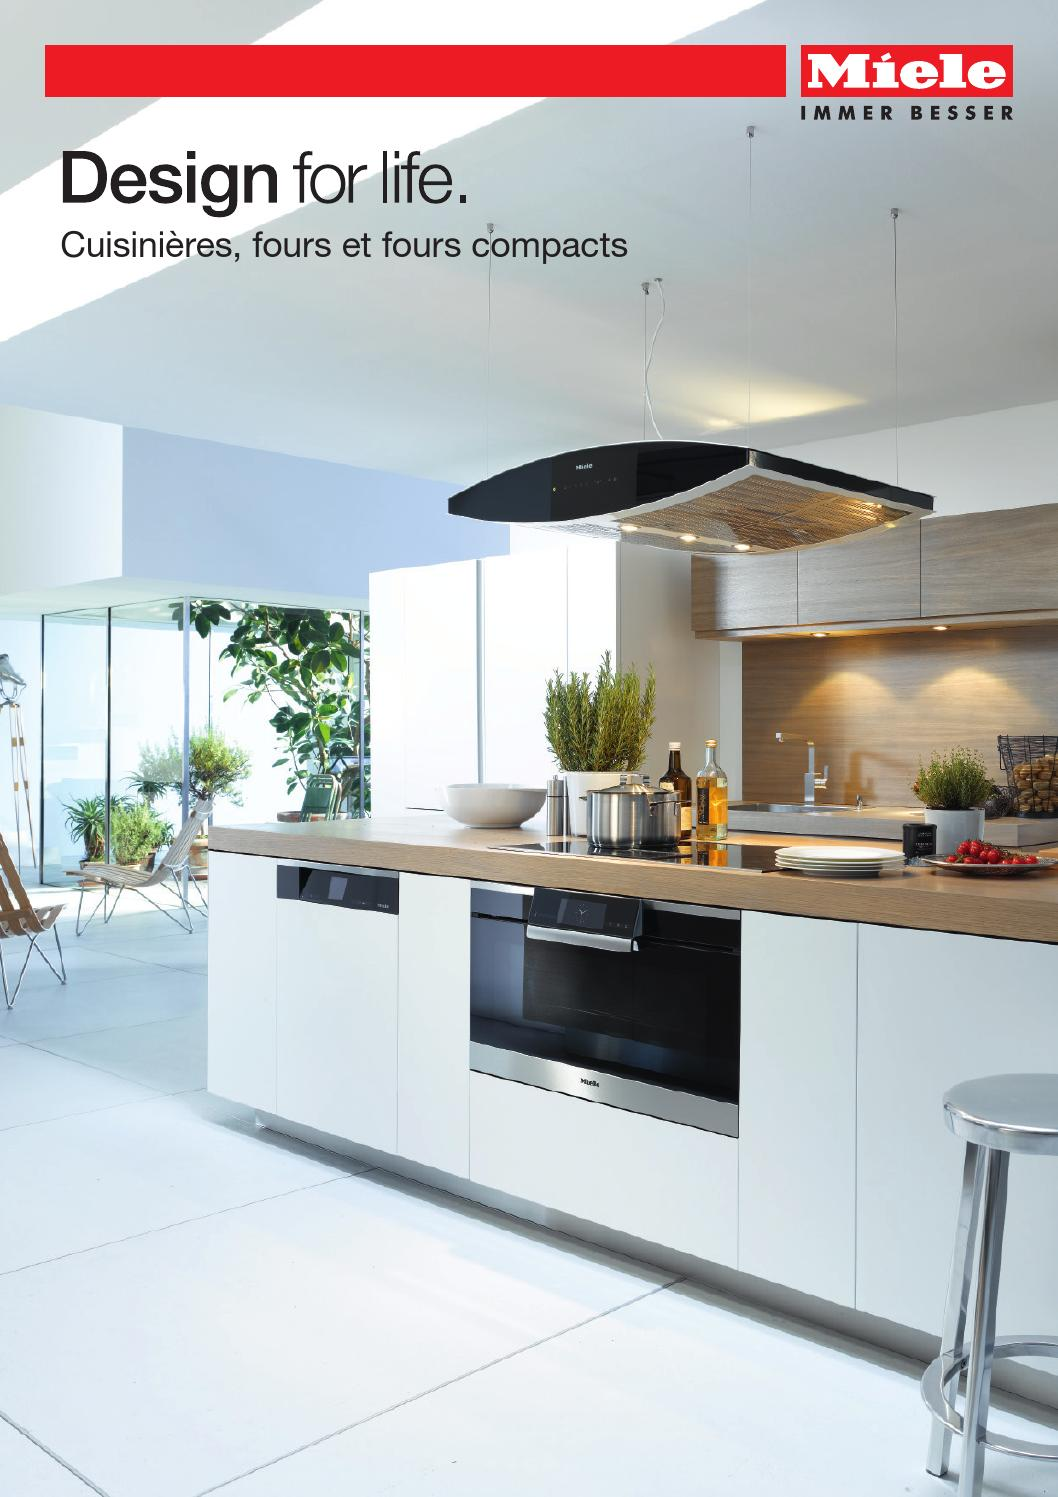 Difference Nettoyage Four Catalyse Ou Pyrolyse miele - catalogue cuisinières, fours et fours compacts - ch